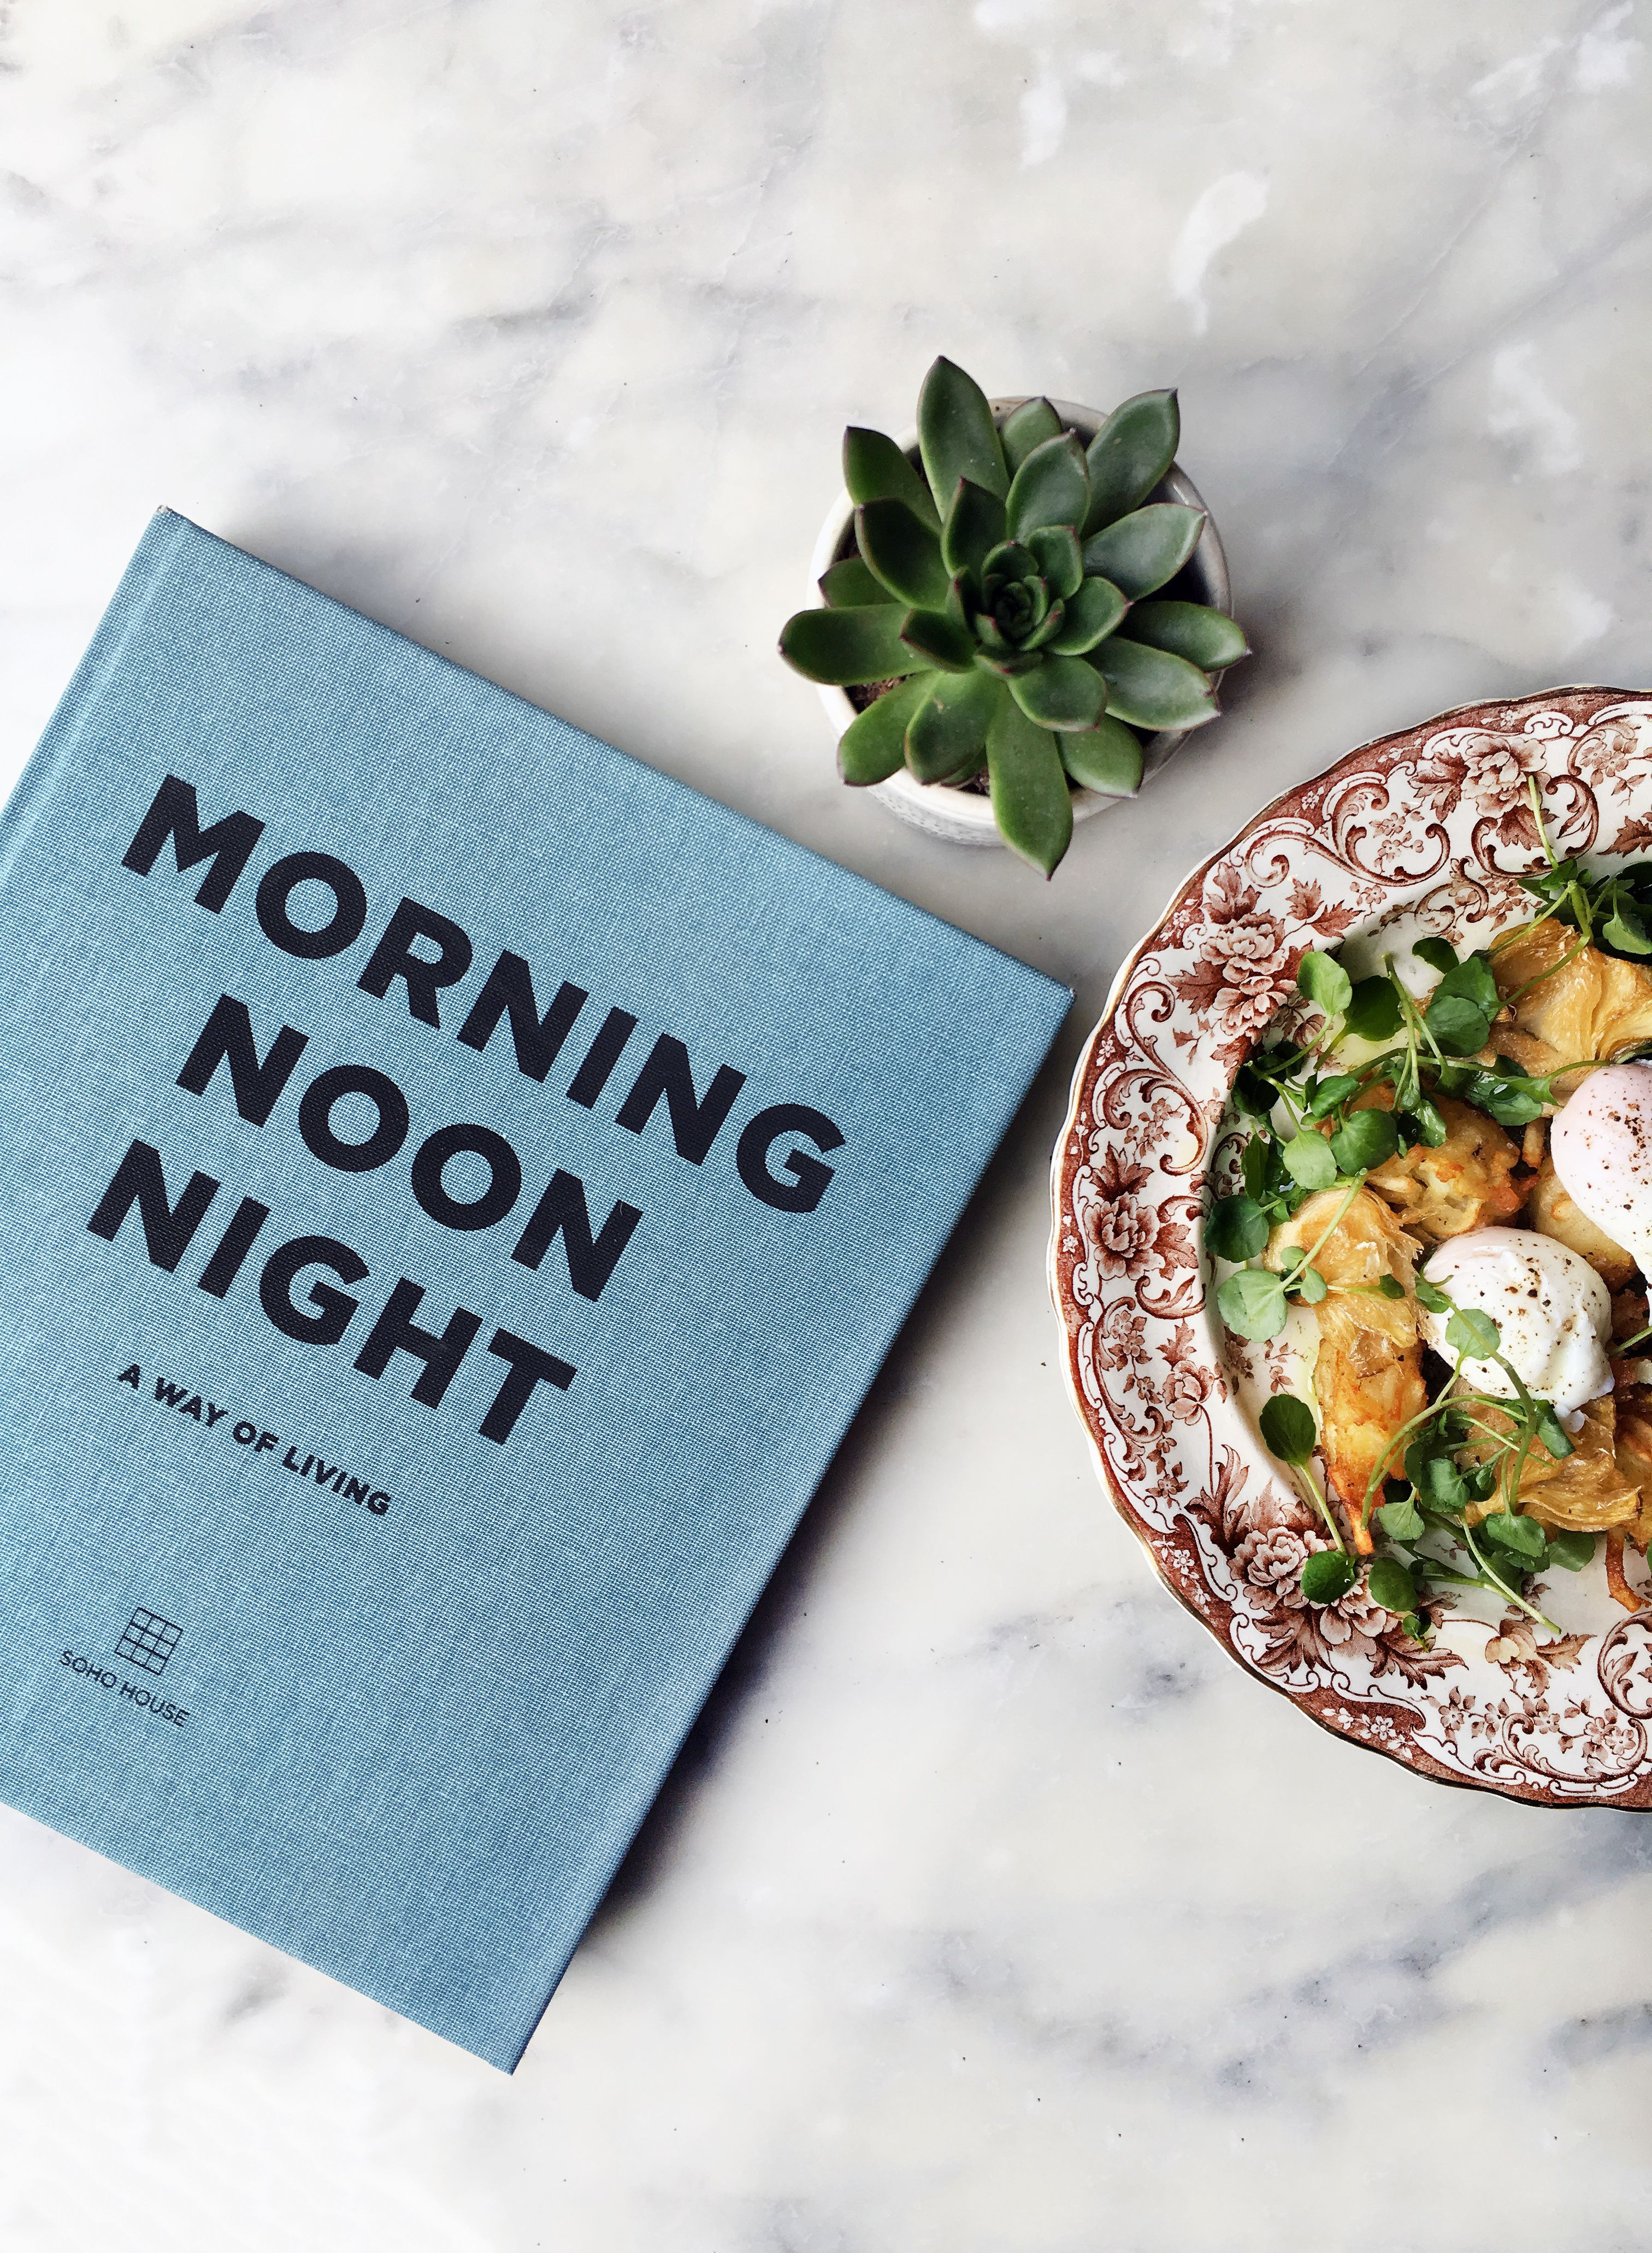 Morning Noon Night A Way of Living from Soho House follows the bestselling Eat